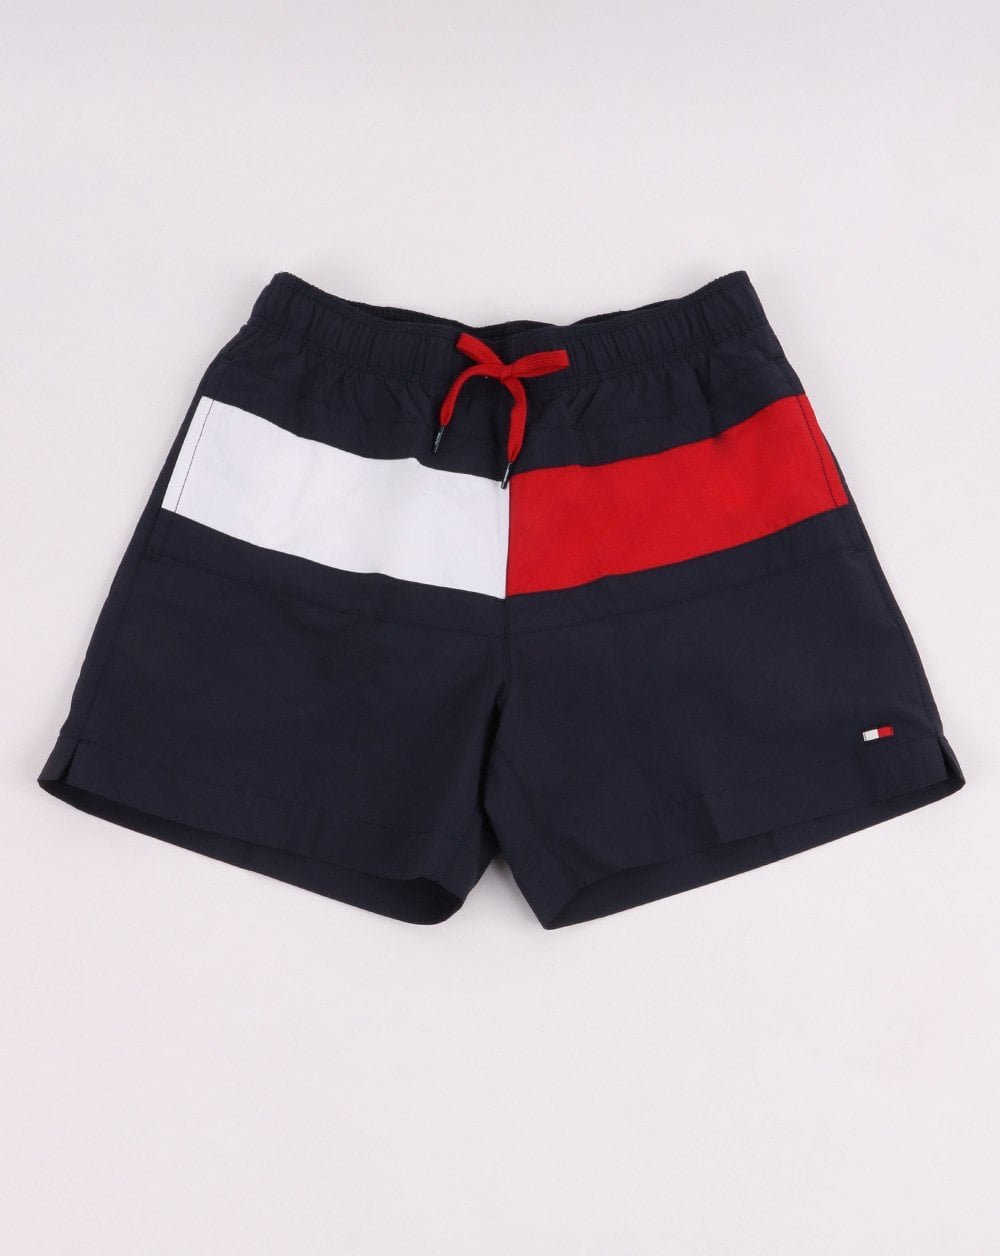 7360169795 Tommy Hilfiger Swim Shorts in Navy?red/White | 80s Casual Classics